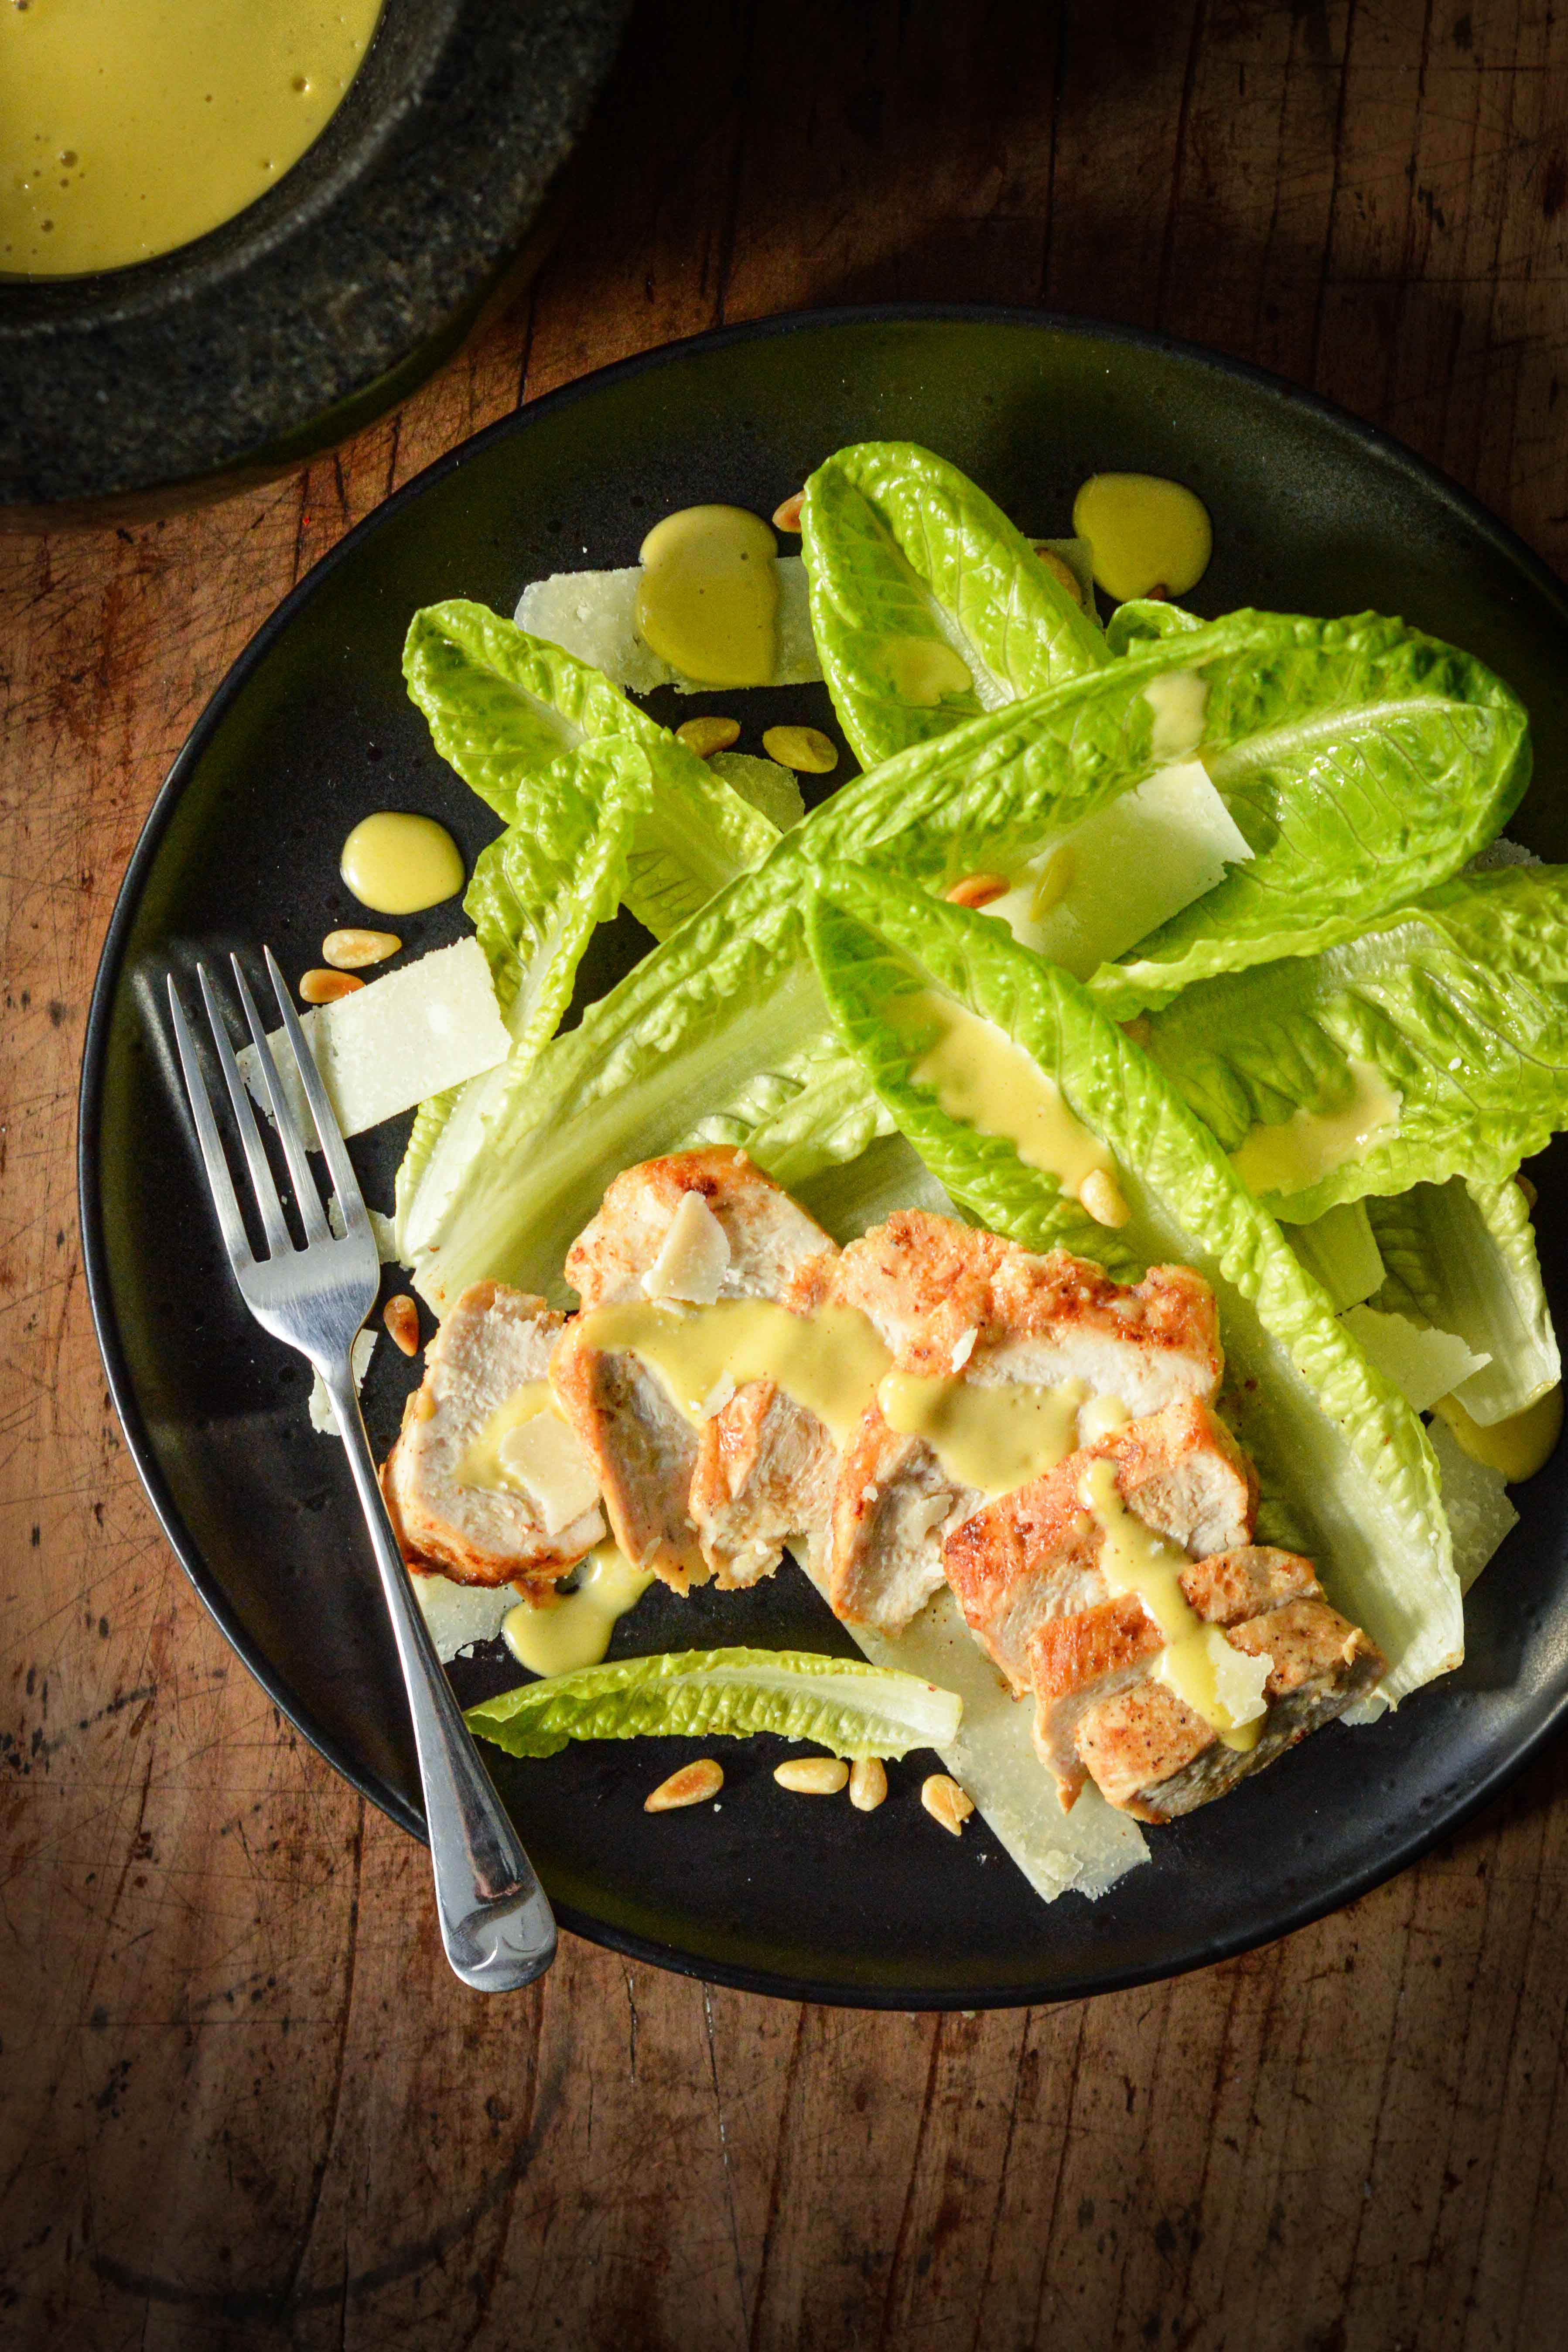 Keto Caesar salad - With a delicious keto Caesar dressing & pine nuts instead of croutons,the Caesar salad carbs are kept low but the flavours are still sublime.